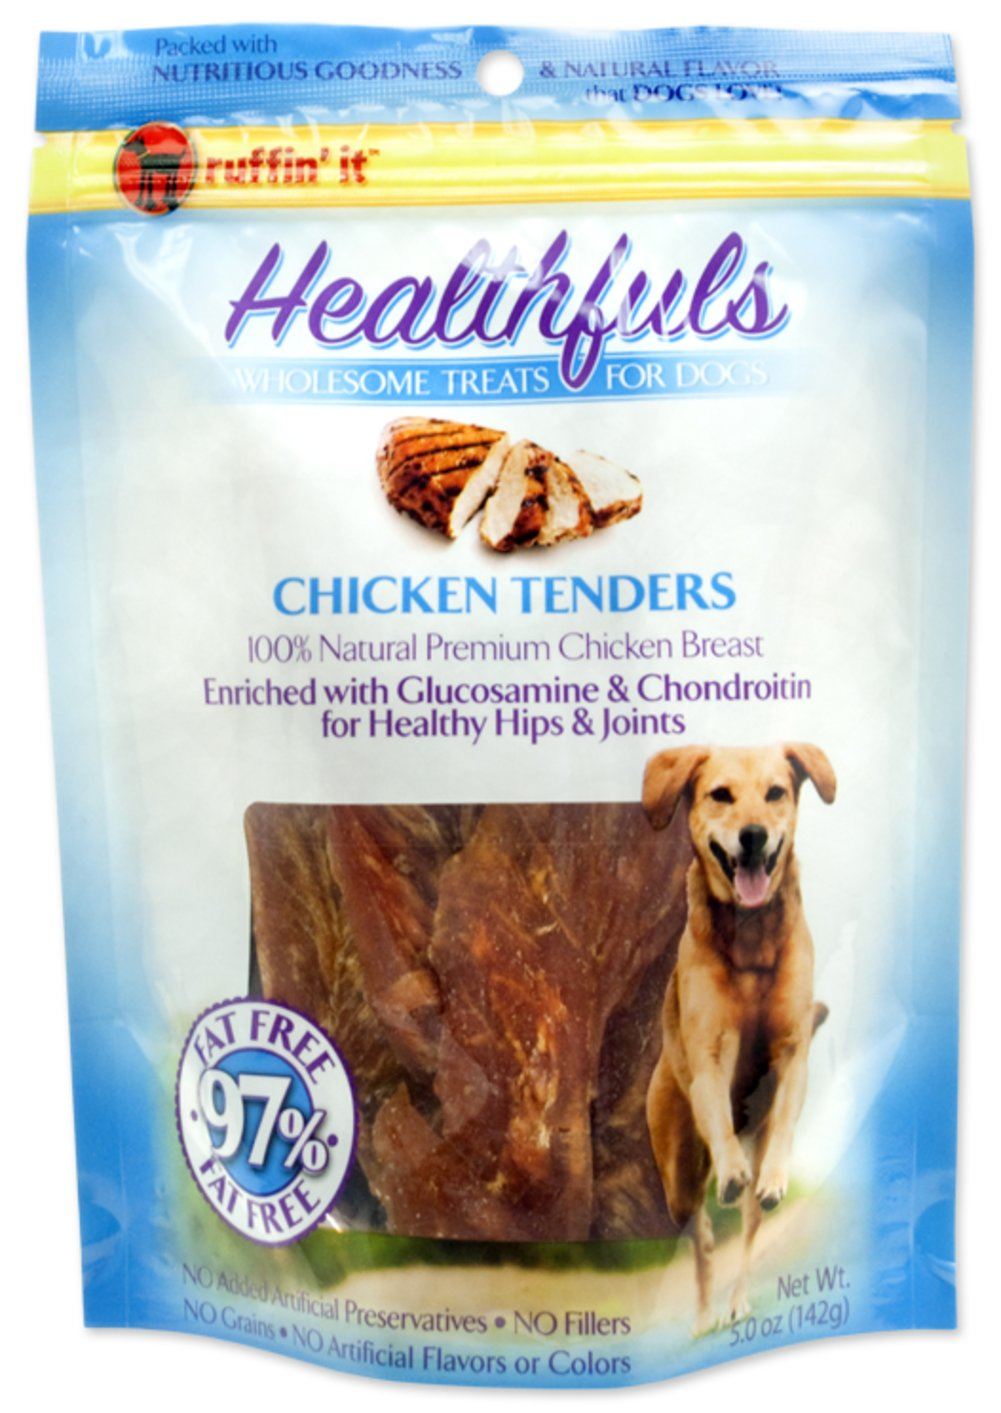 Healthfuls Chicken Tenders with Glucosamine & Chondroitin <p><strong>From the Manufacturer's Label:</strong></p><p>Ruffin' It™ Healthfuls Chicken Tenders are packed with nutritious goodness and a natural sweet flavor that dogs love.  100% natural premium chicken breast enriched with glucosamine & chondroitin.  No artificial preservatives, no fillers, no grains and  no artificial flavors or colors.</p> 5 oz Bag  $9.99